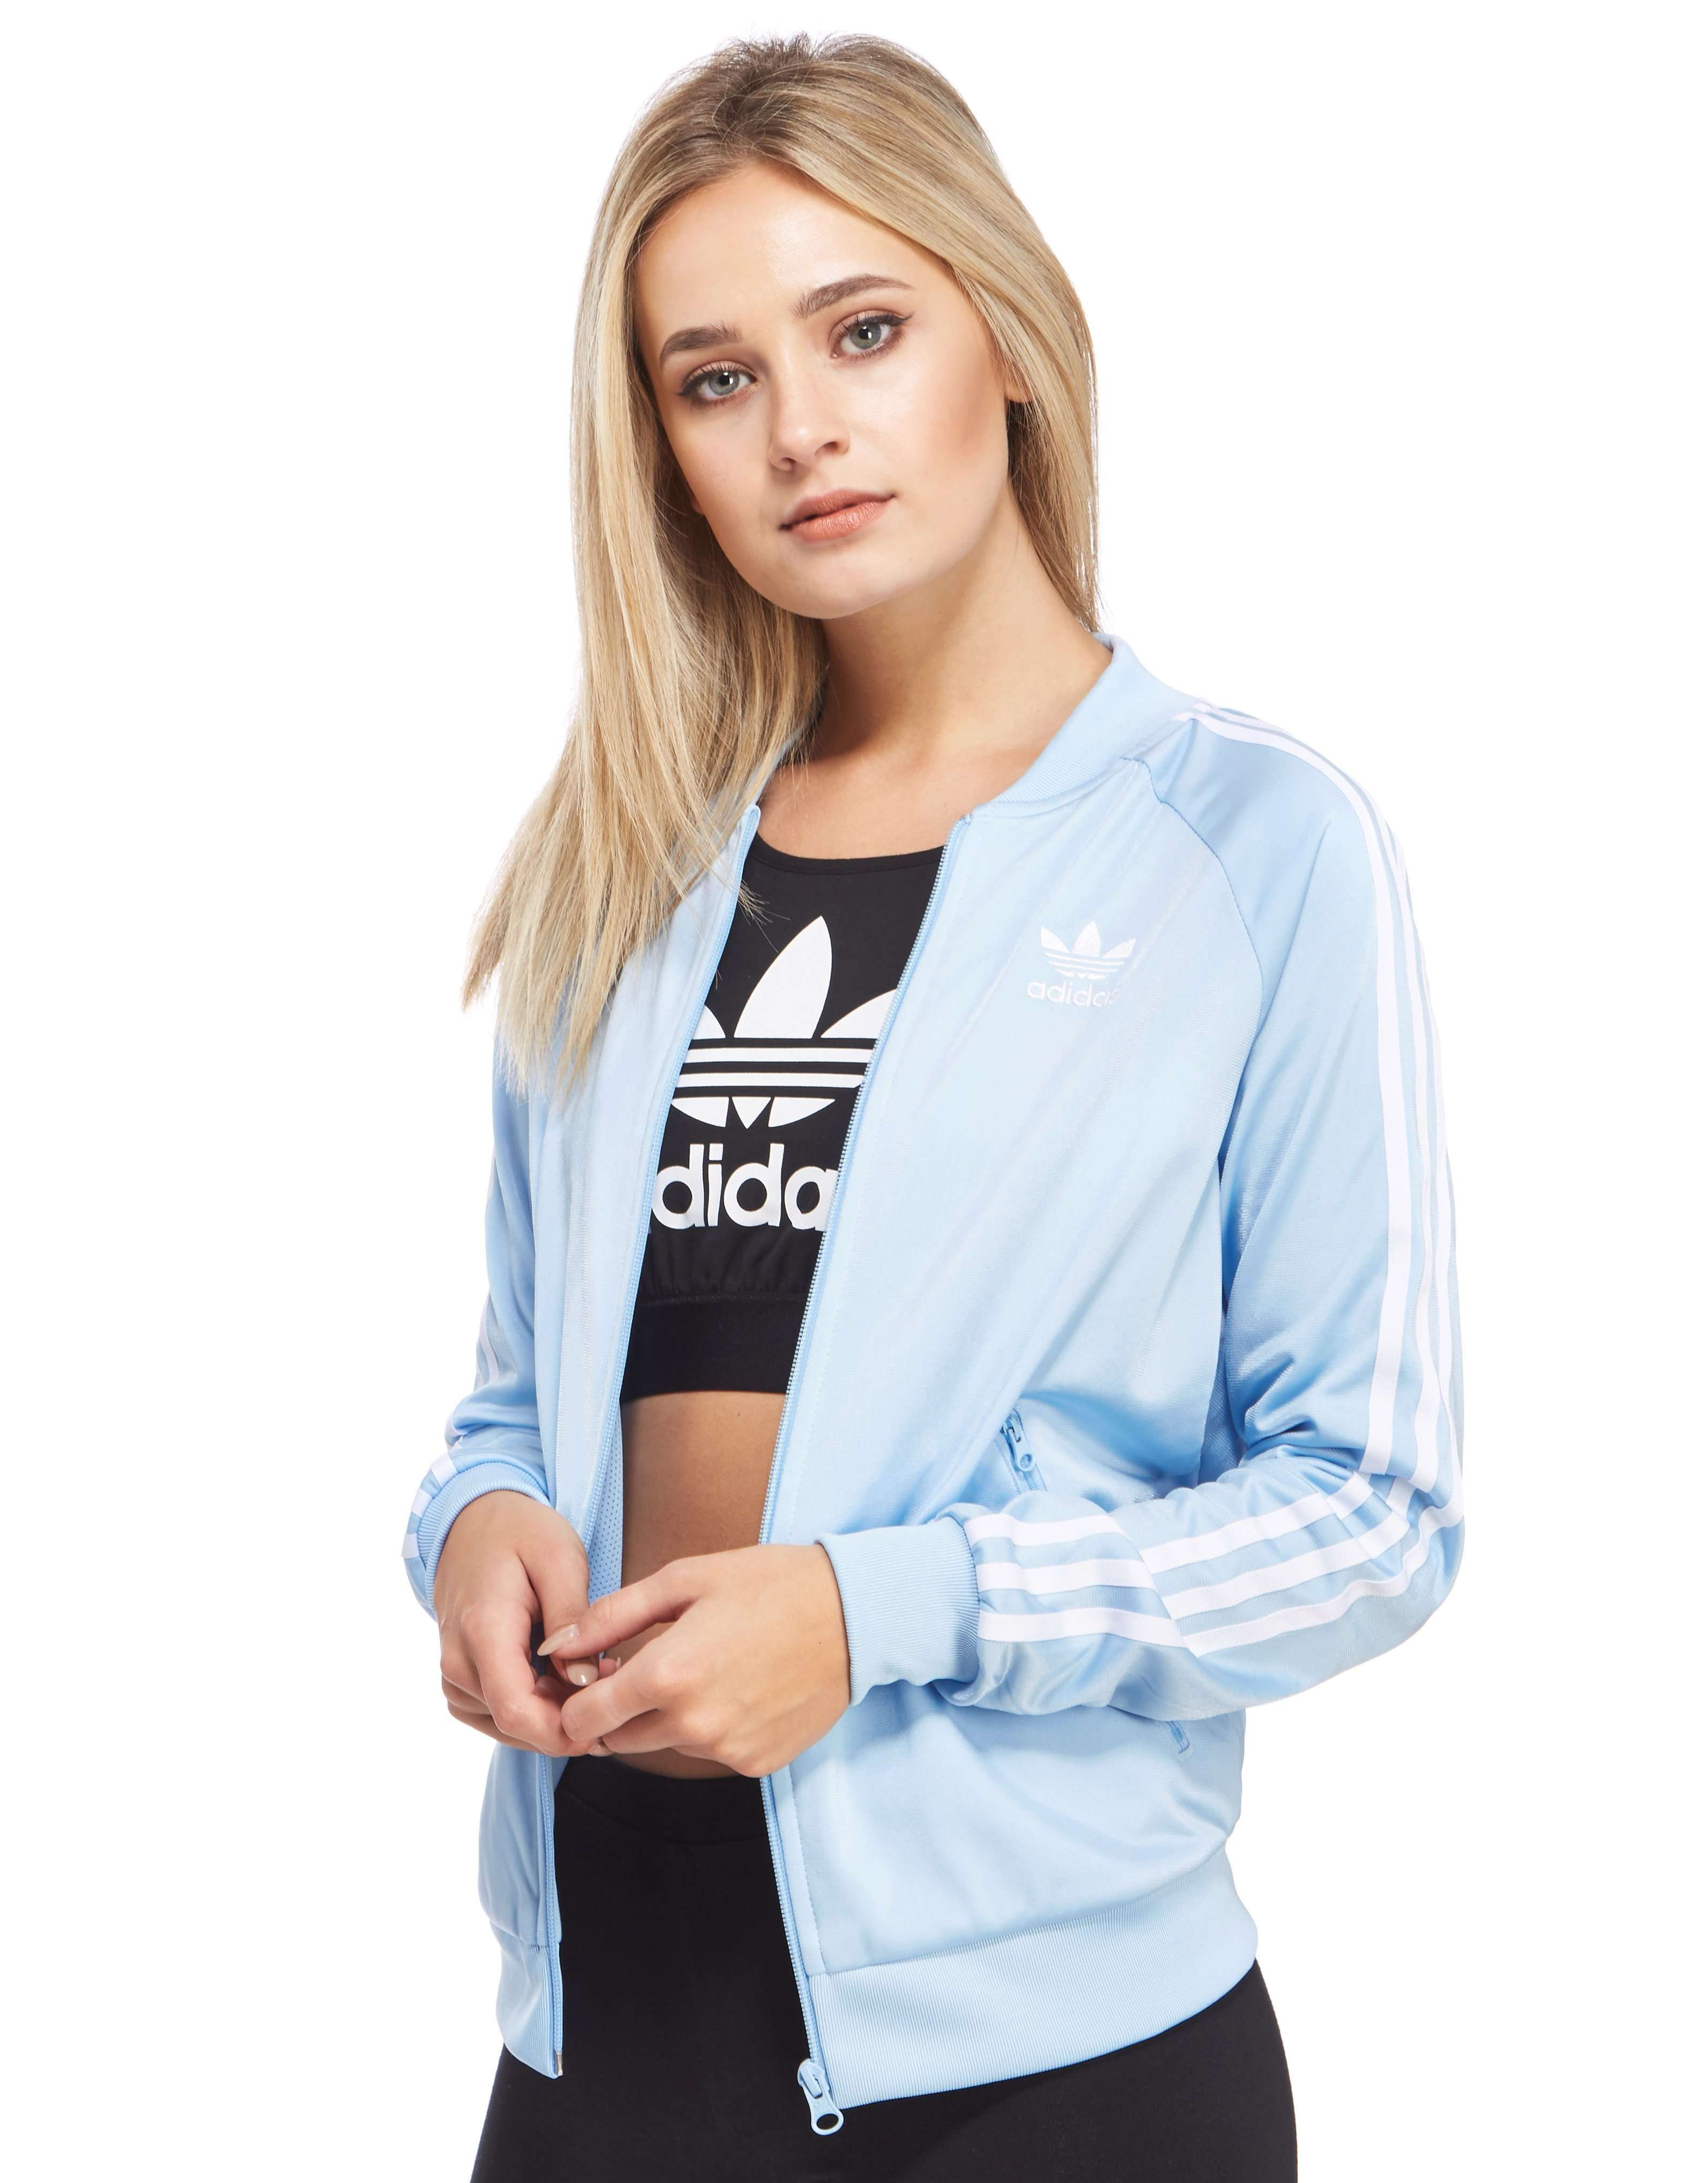 330723708d adidas Originals Supergirl Track Top - Shop online for adidas Originals  Supergirl Track Top with JD Sports